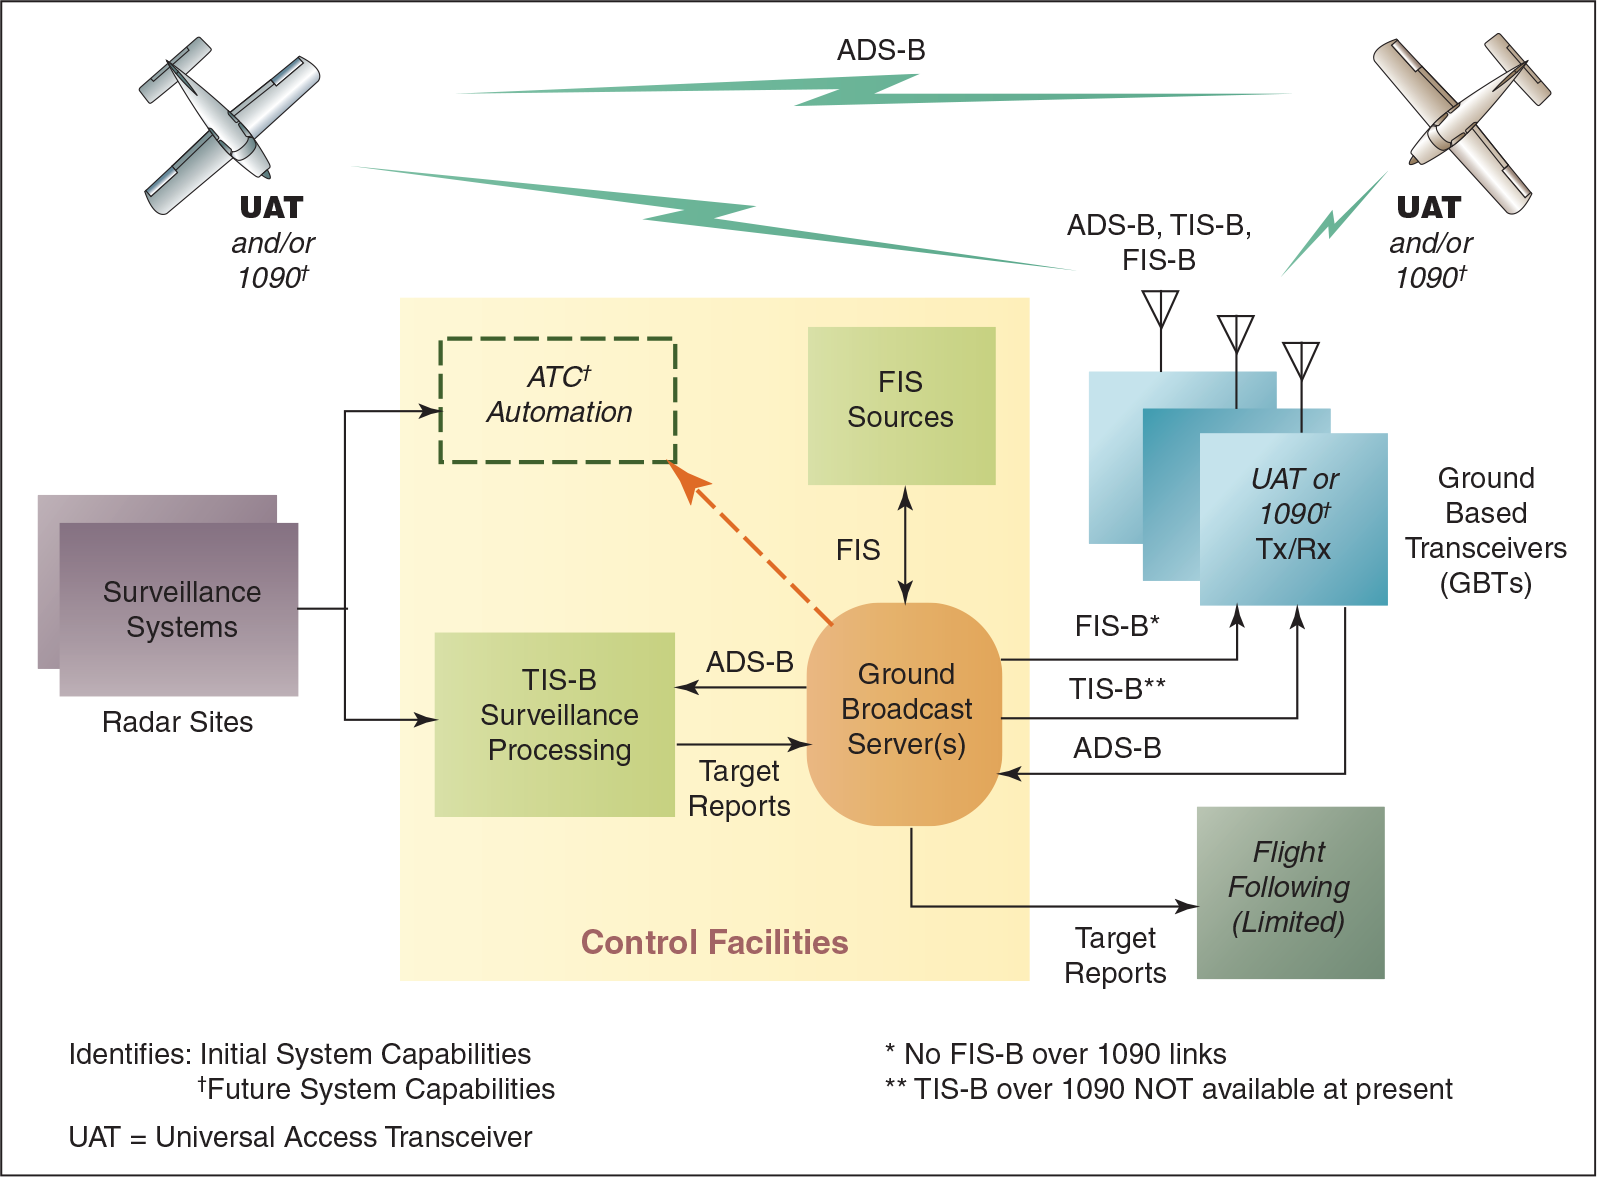 ADS-B, TIS-B, and FIS-B: broadcast services architecture.